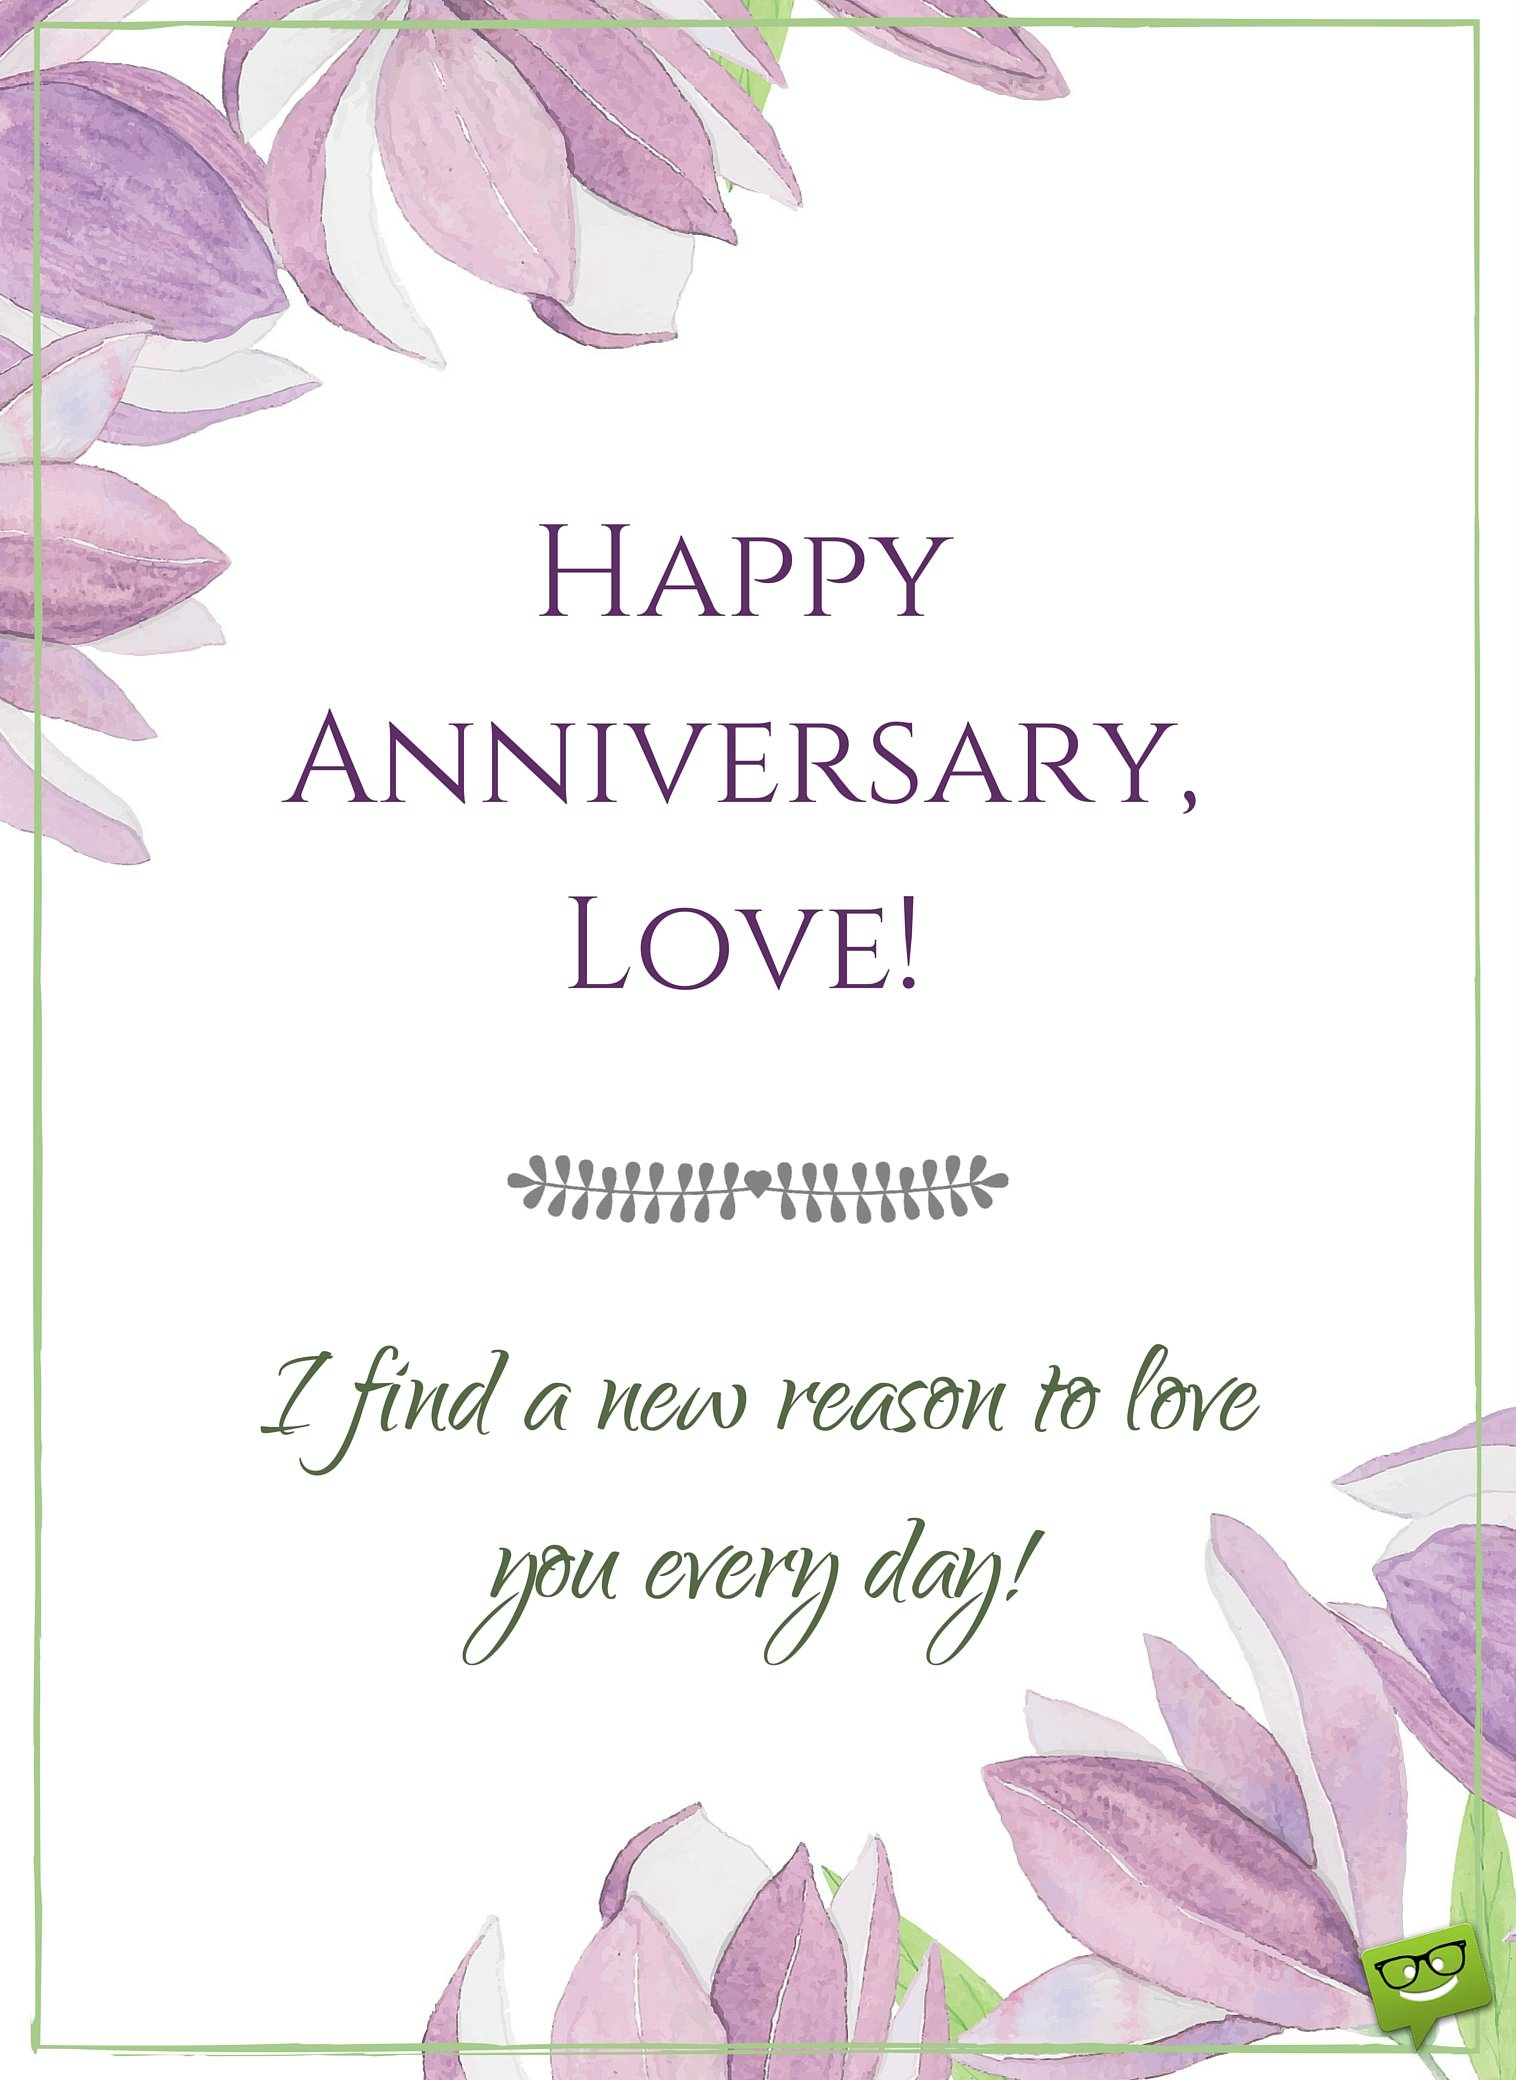 today my marriage anniversary